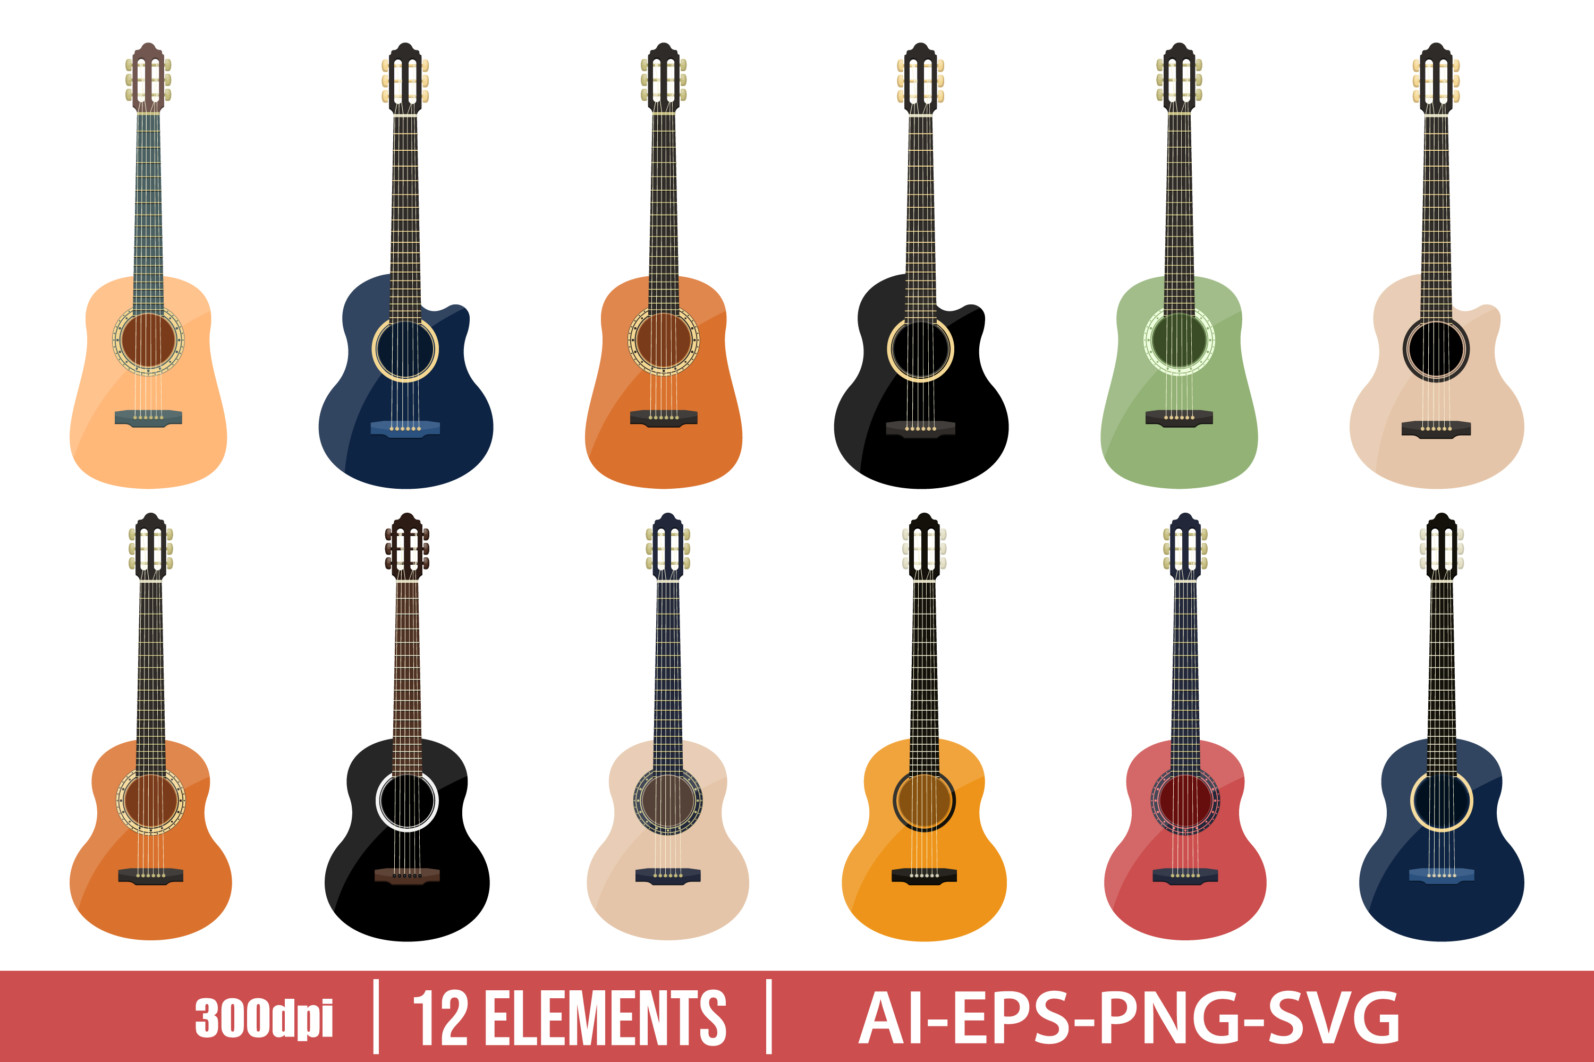 Stylish classical guitar clipart vector design illustration . Vector Clipart Print - GUITAR 1 scaled -